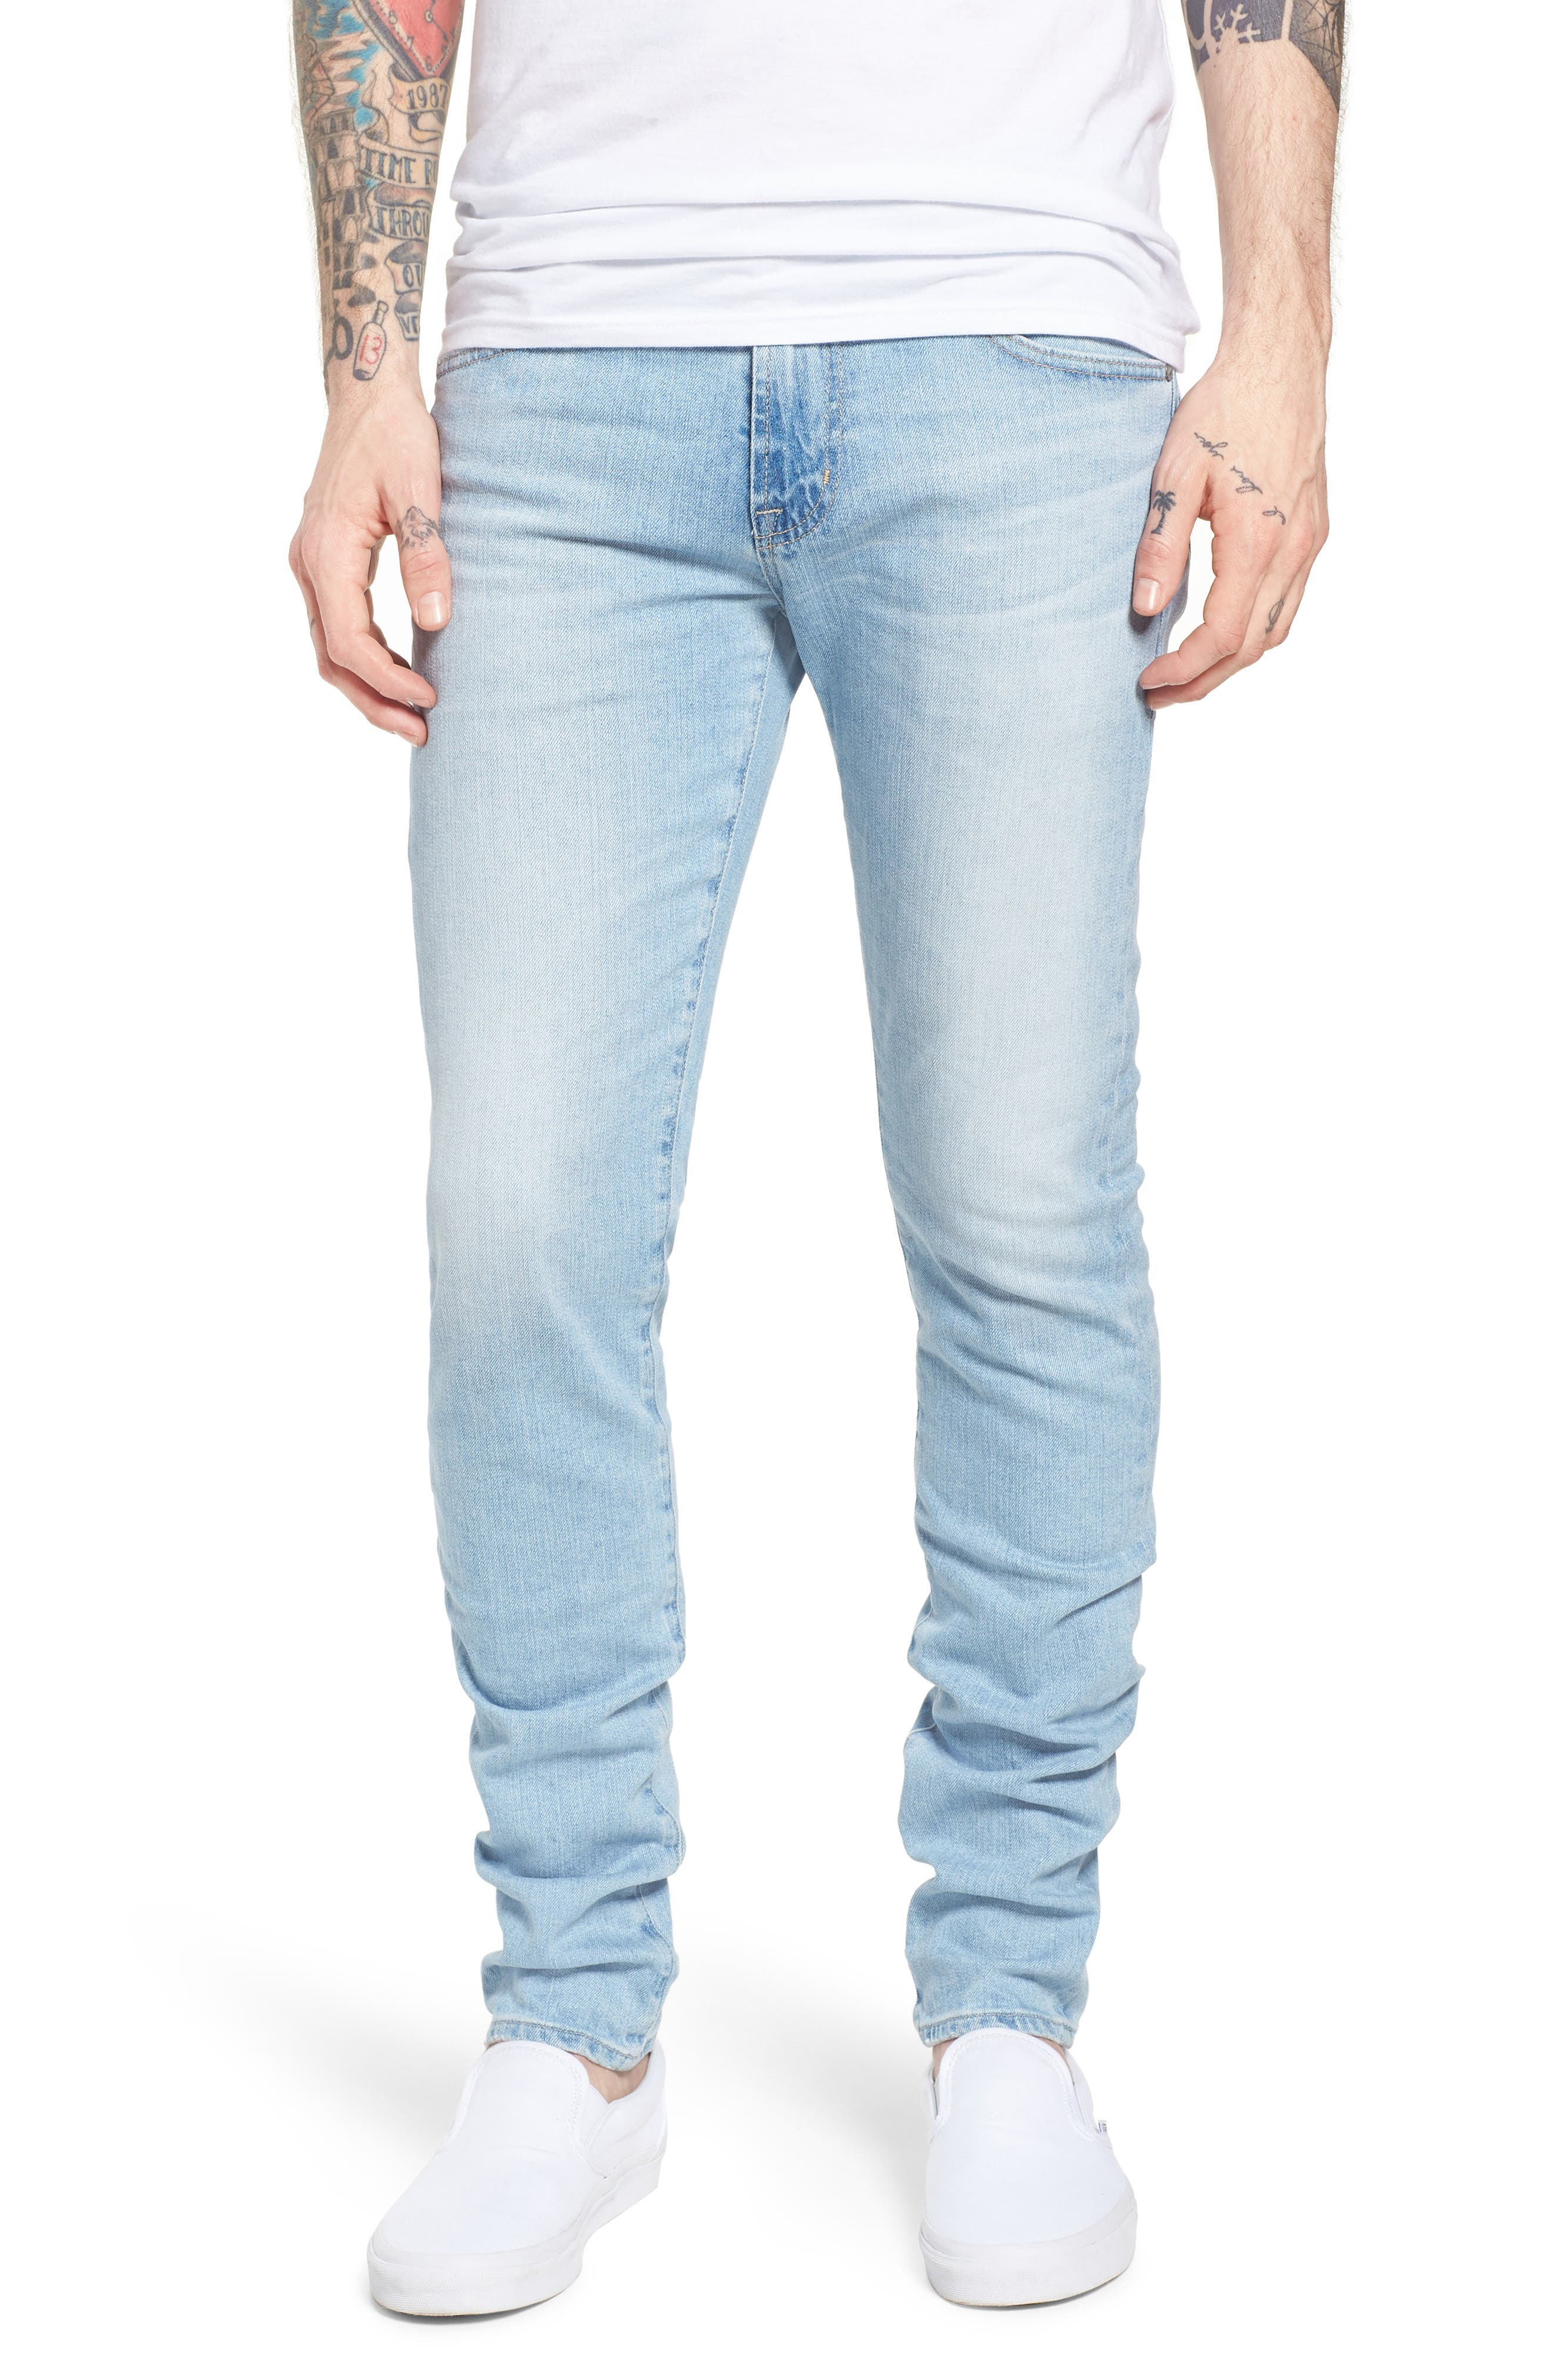 Stockton Skinny Fit Jeans,                             Main thumbnail 1, color,                             21 Years Solstice